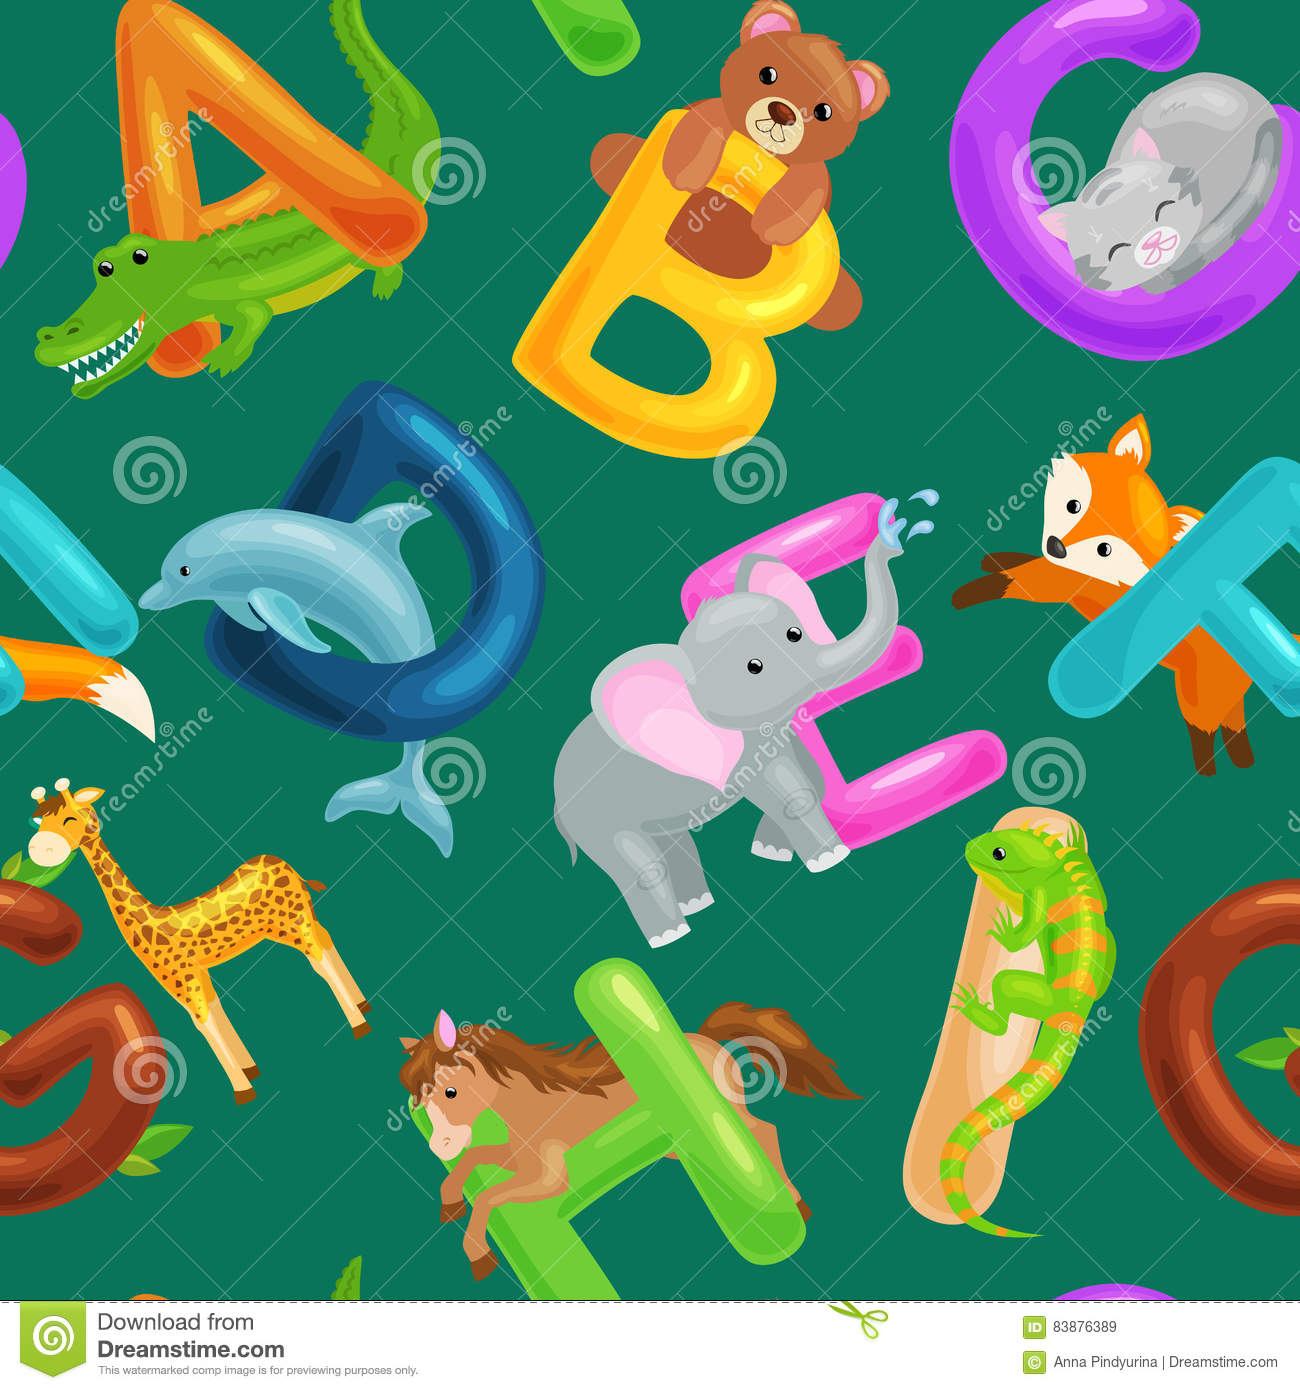 set of animals alphabet for kids fish letters cartoon fun abc education in preschool